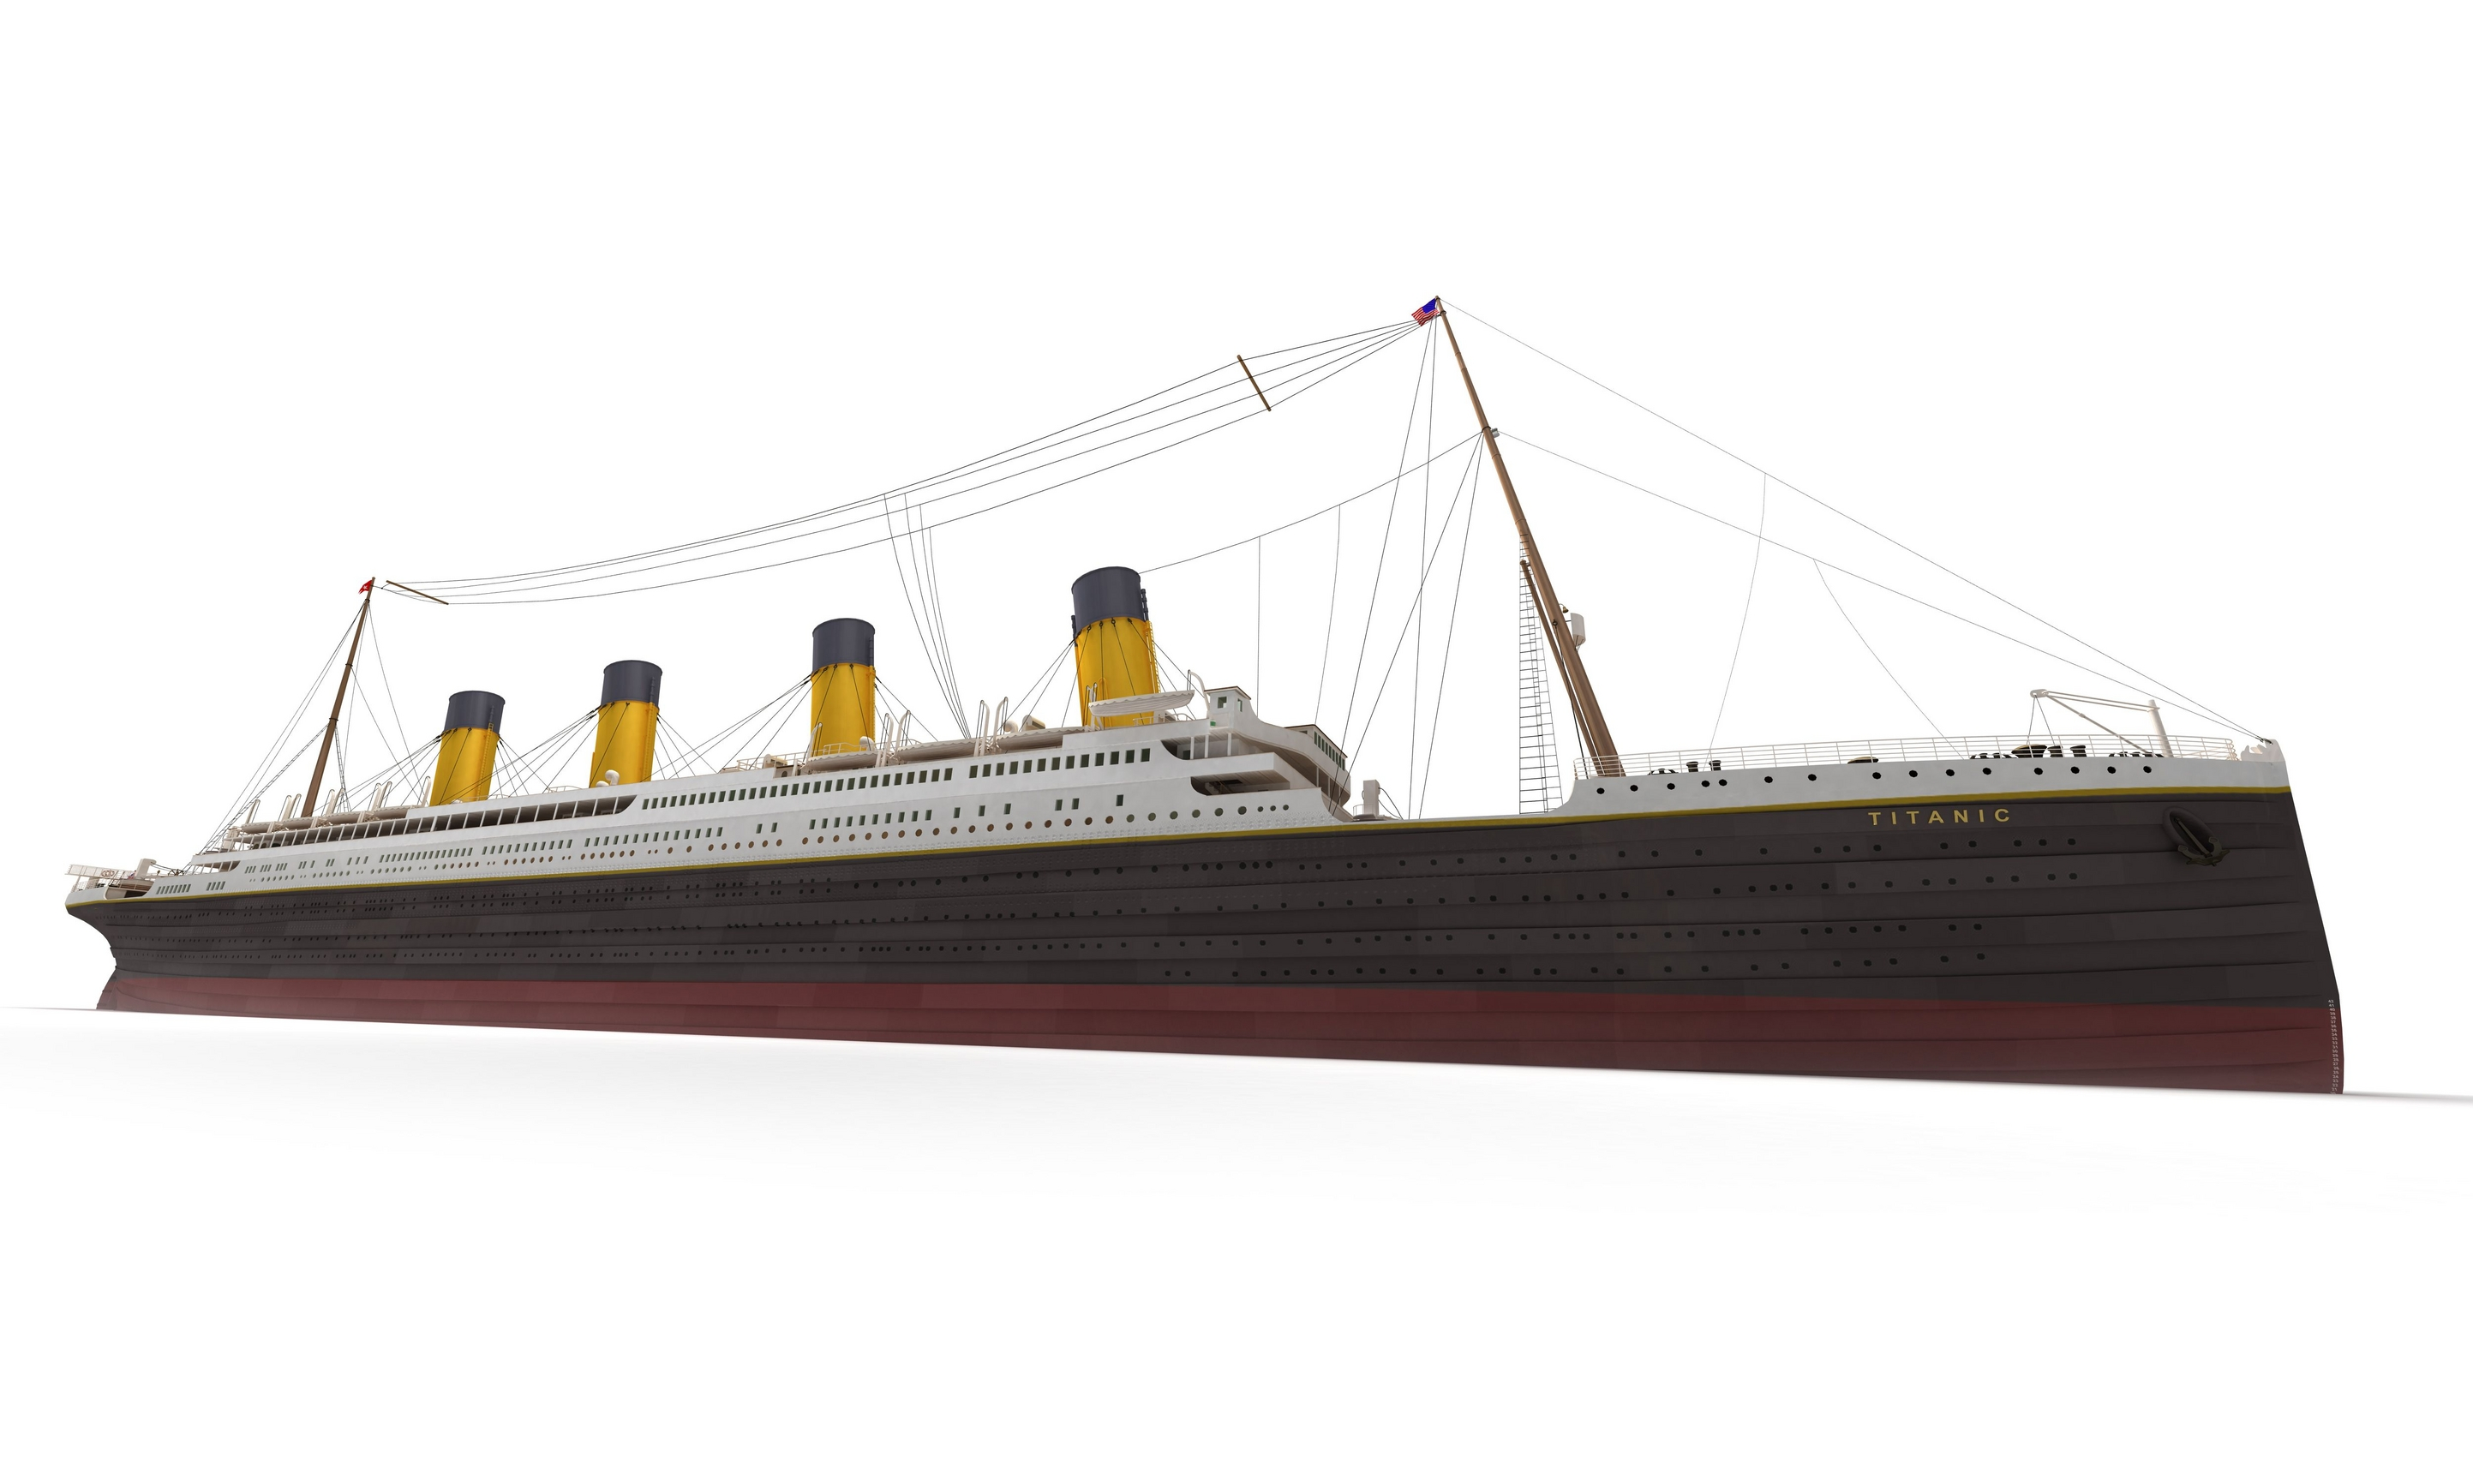 Cruise Lines to Retrace Titanic's Journey, Aiming for Better Result